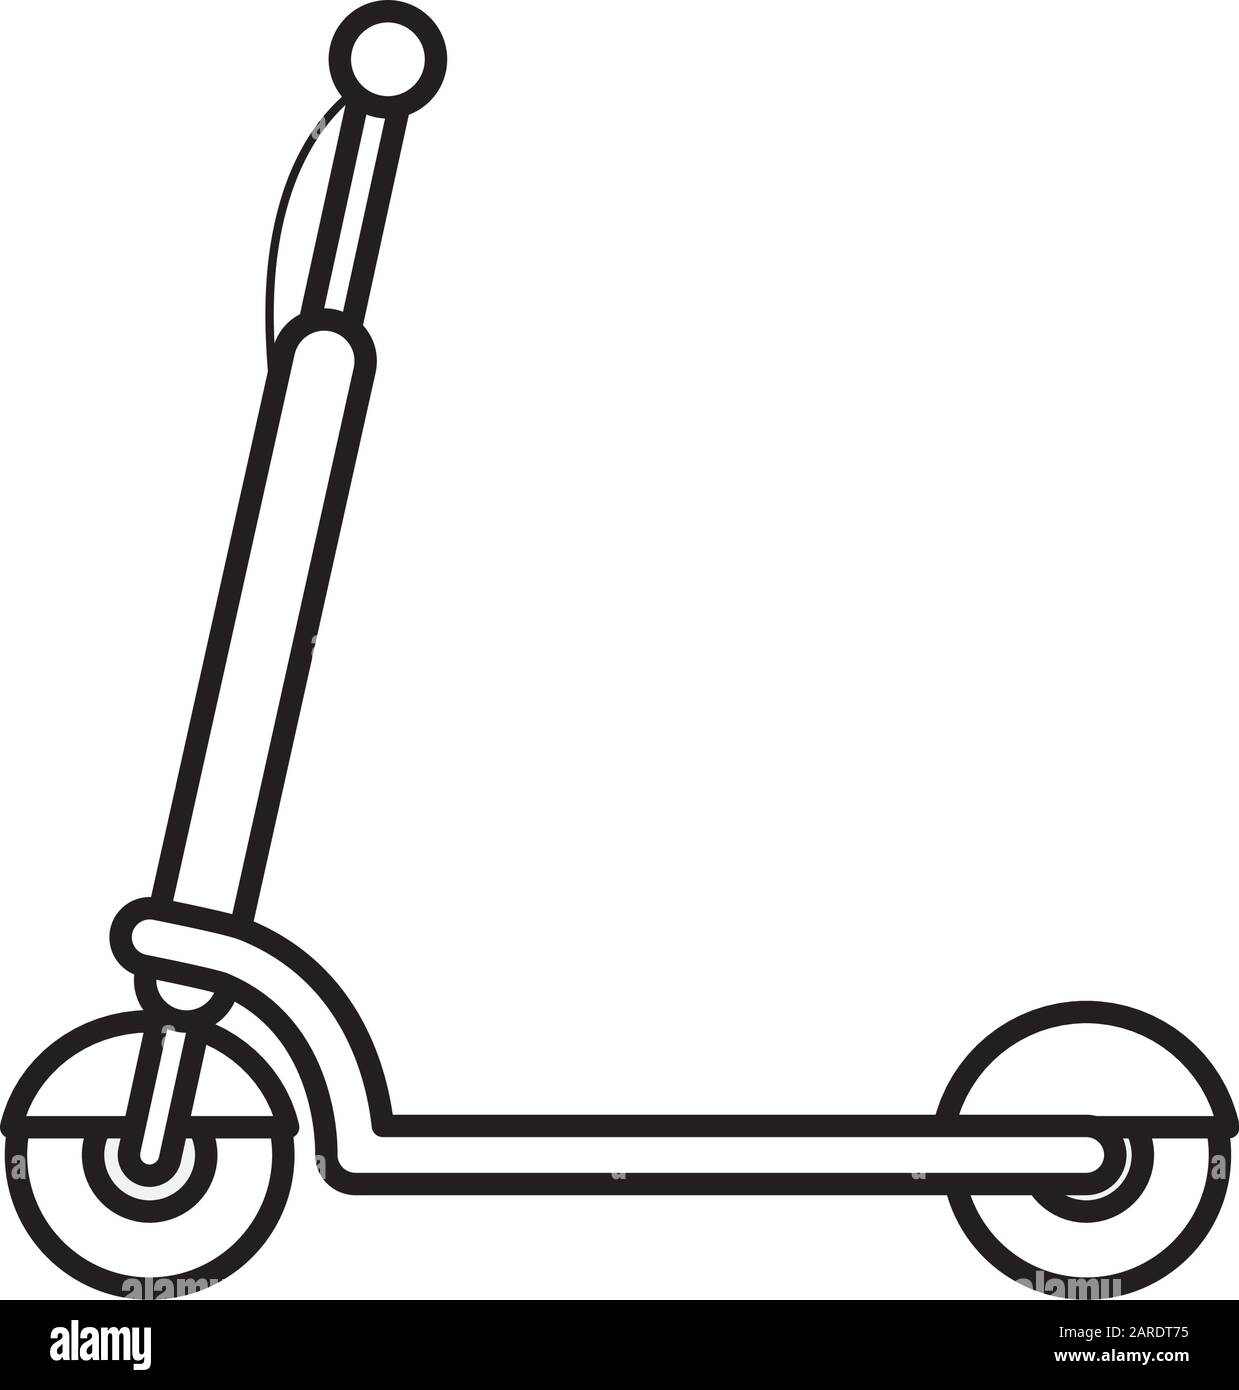 Electric Scooter Transport Recreation Equipment On White Background Vector Illustration Thick Line Stock Vector Image Art Alamy